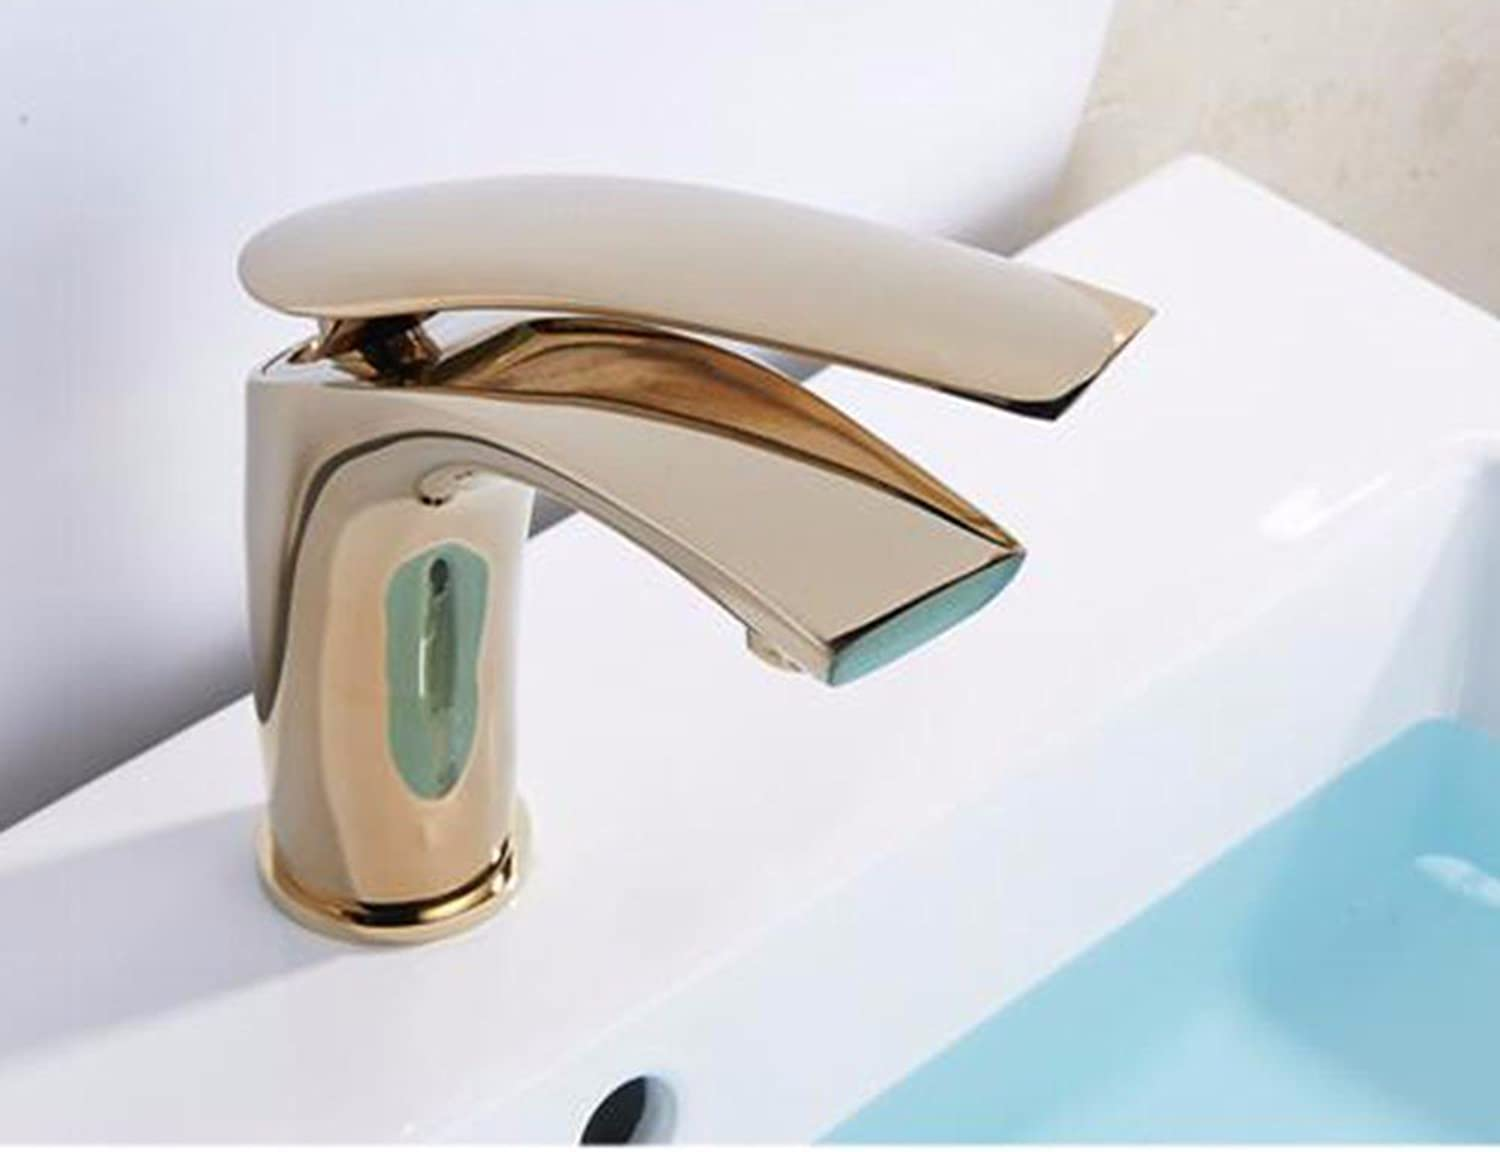 Hlluya Professional Sink Mixer Tap Kitchen Faucet Modern gold faucet, surface basin with high water taps, bathroom cabinets and cold water taps,